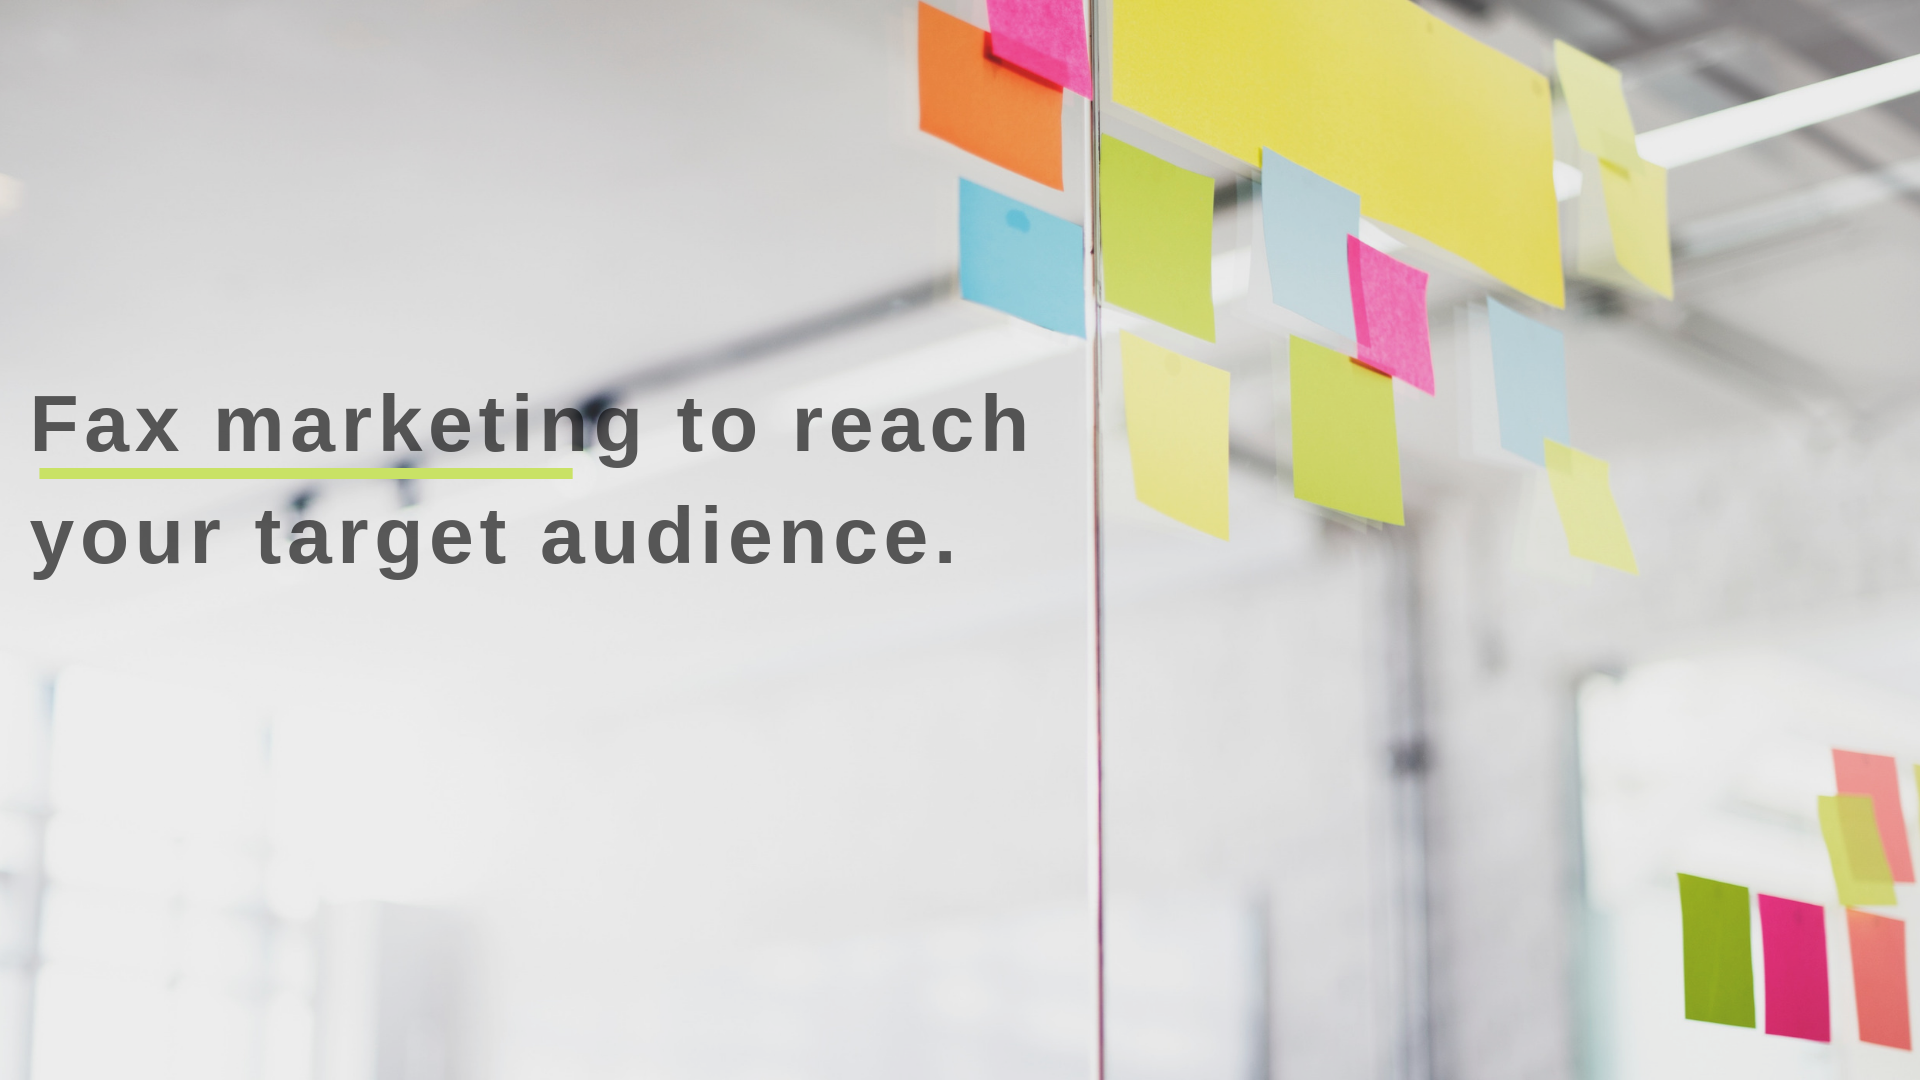 fax-marketing-to-reach-your-target-audience